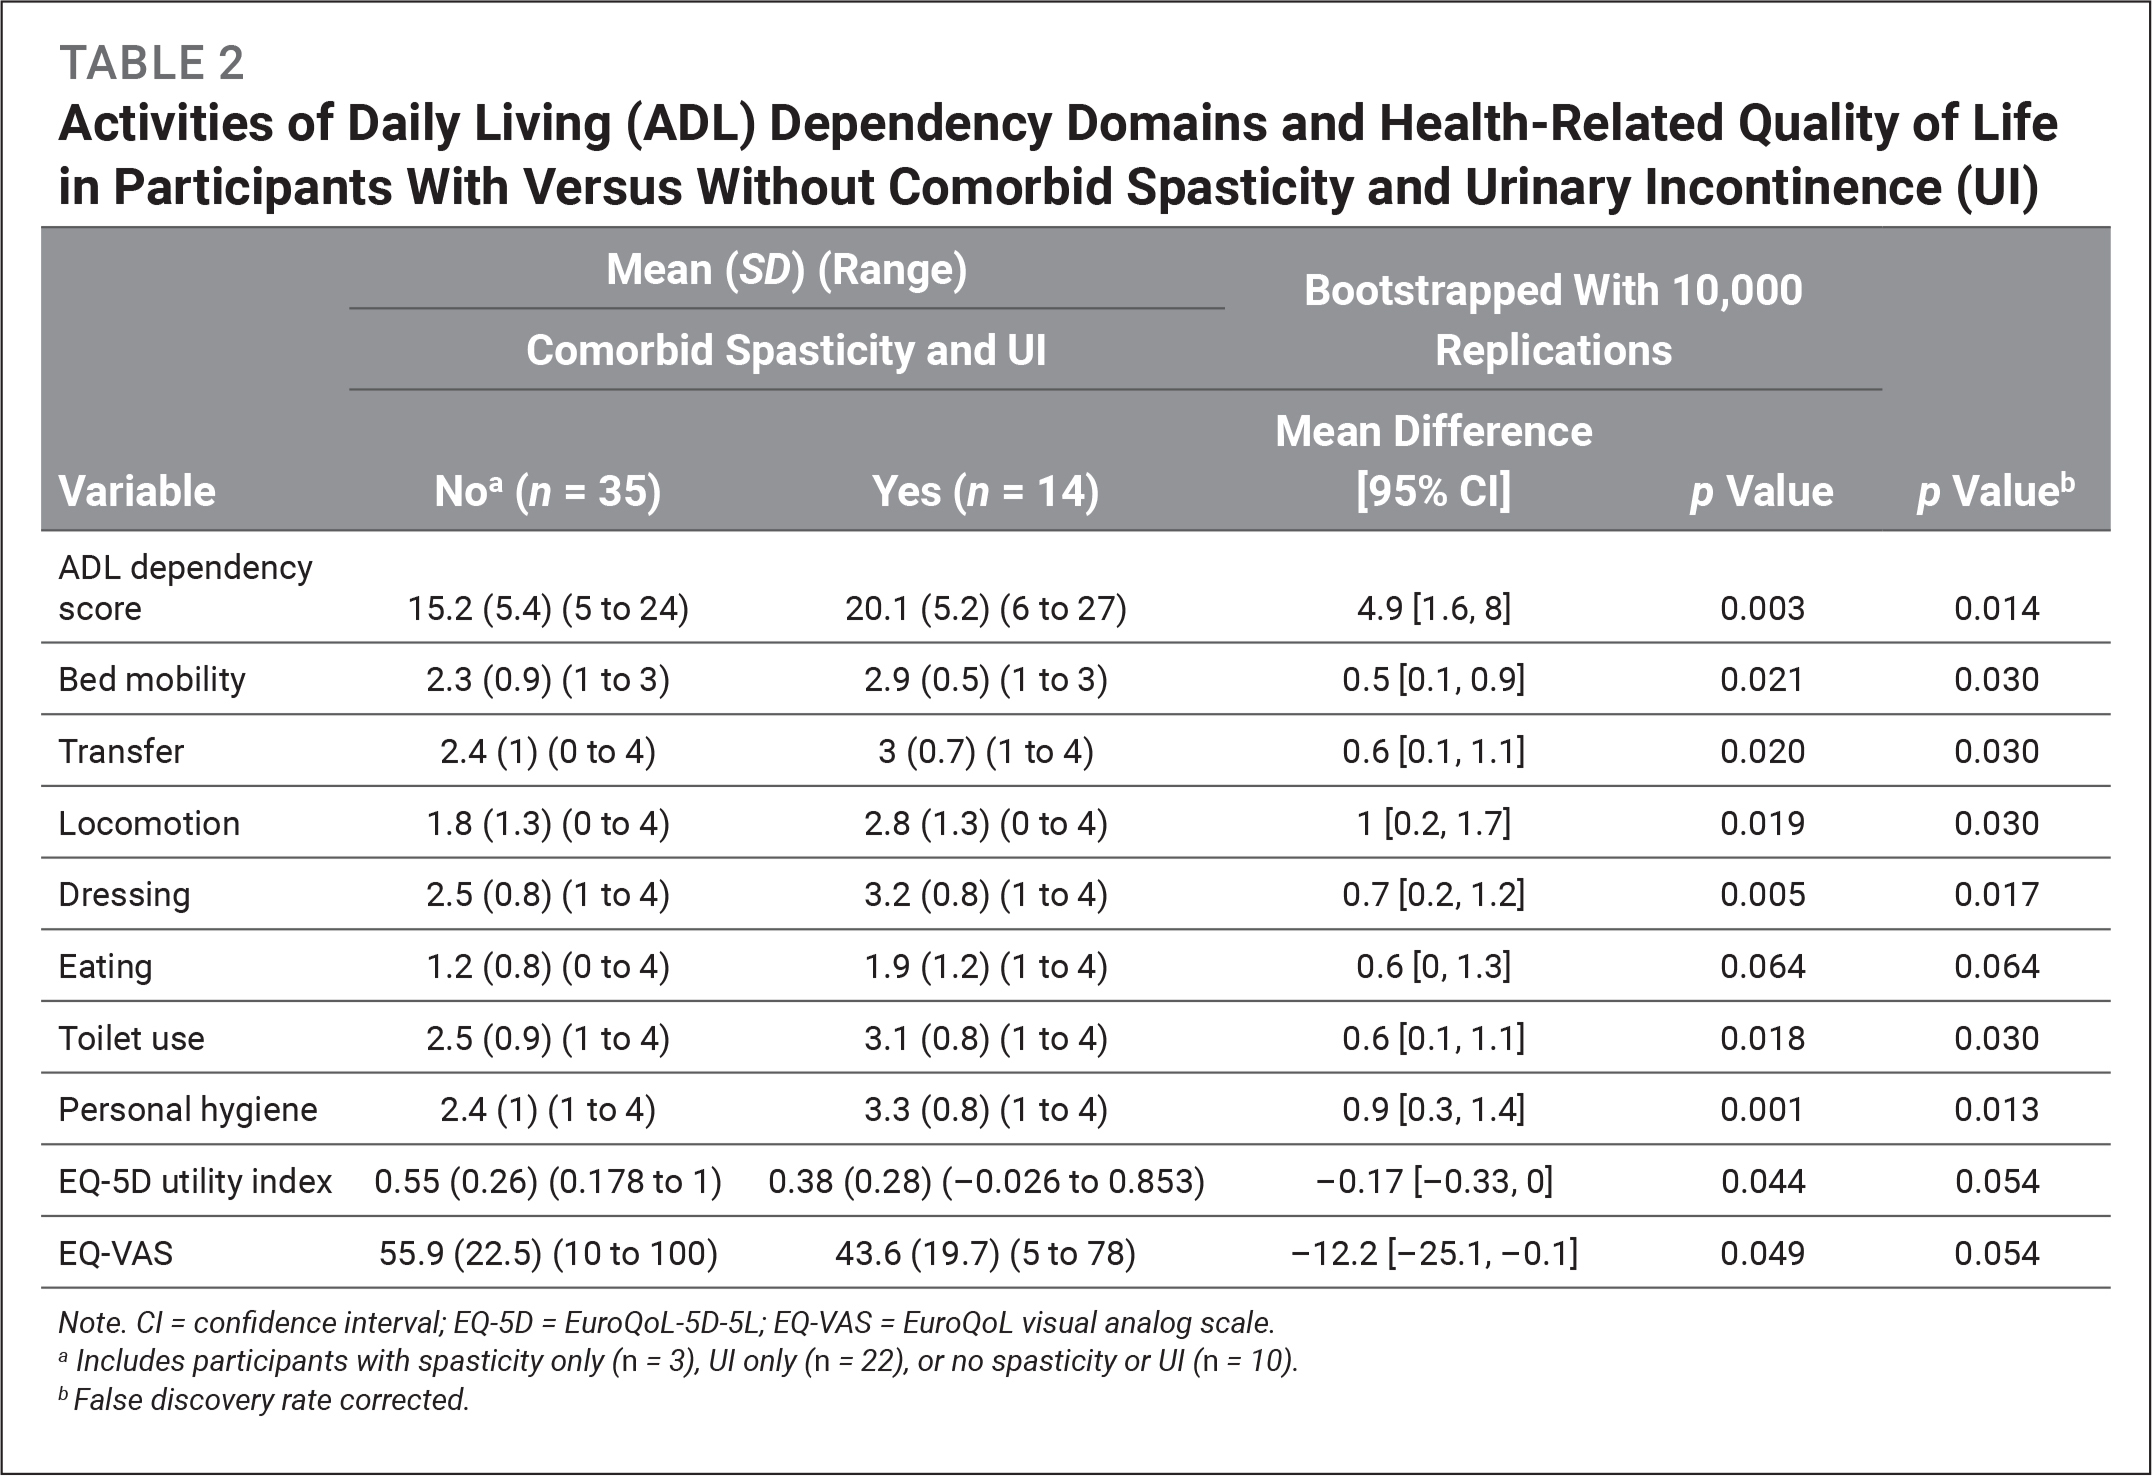 Activities of Daily Living (ADL) Dependency Domains and Health-Related Quality of Life in Participants With Versus Without Comorbid Spasticity and Urinary Incontinence (UI)